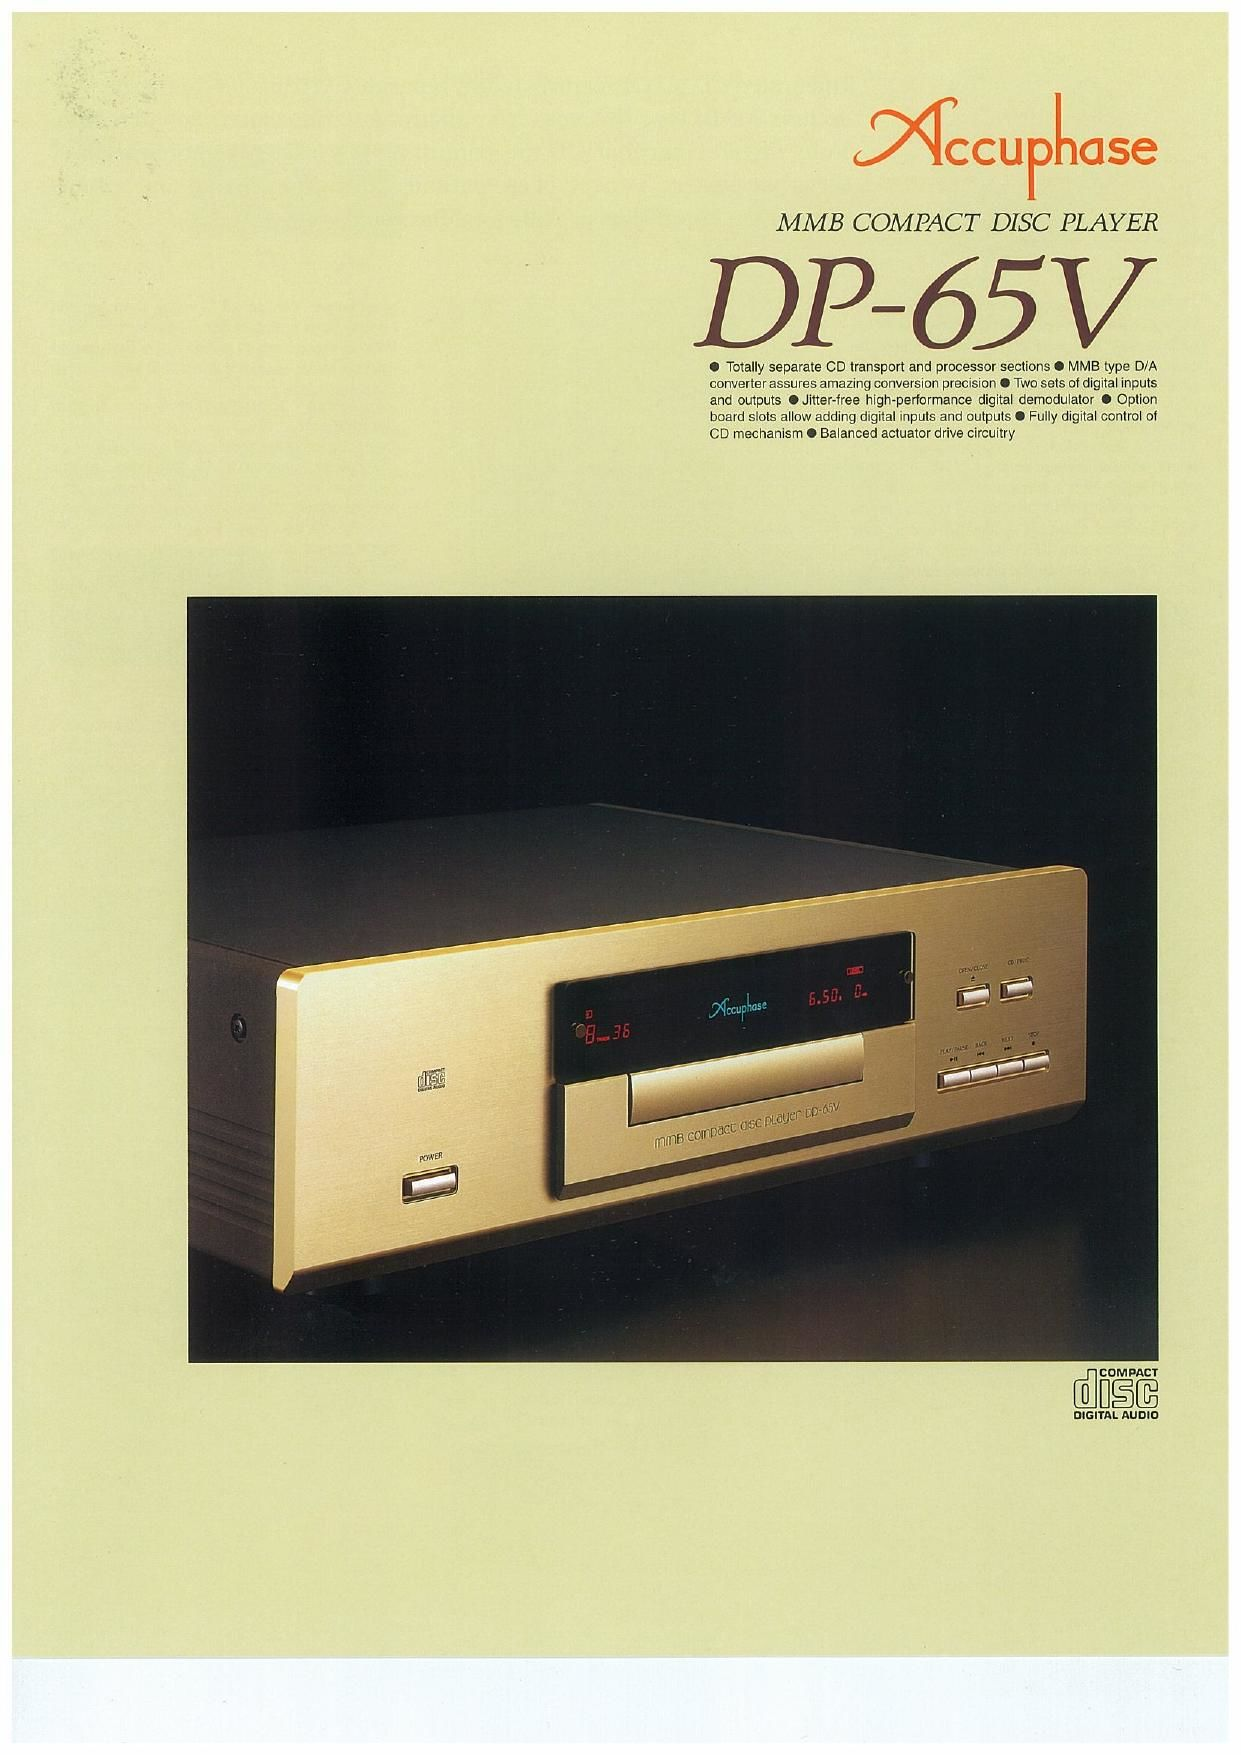 Accuphase DP 65 V Brochure